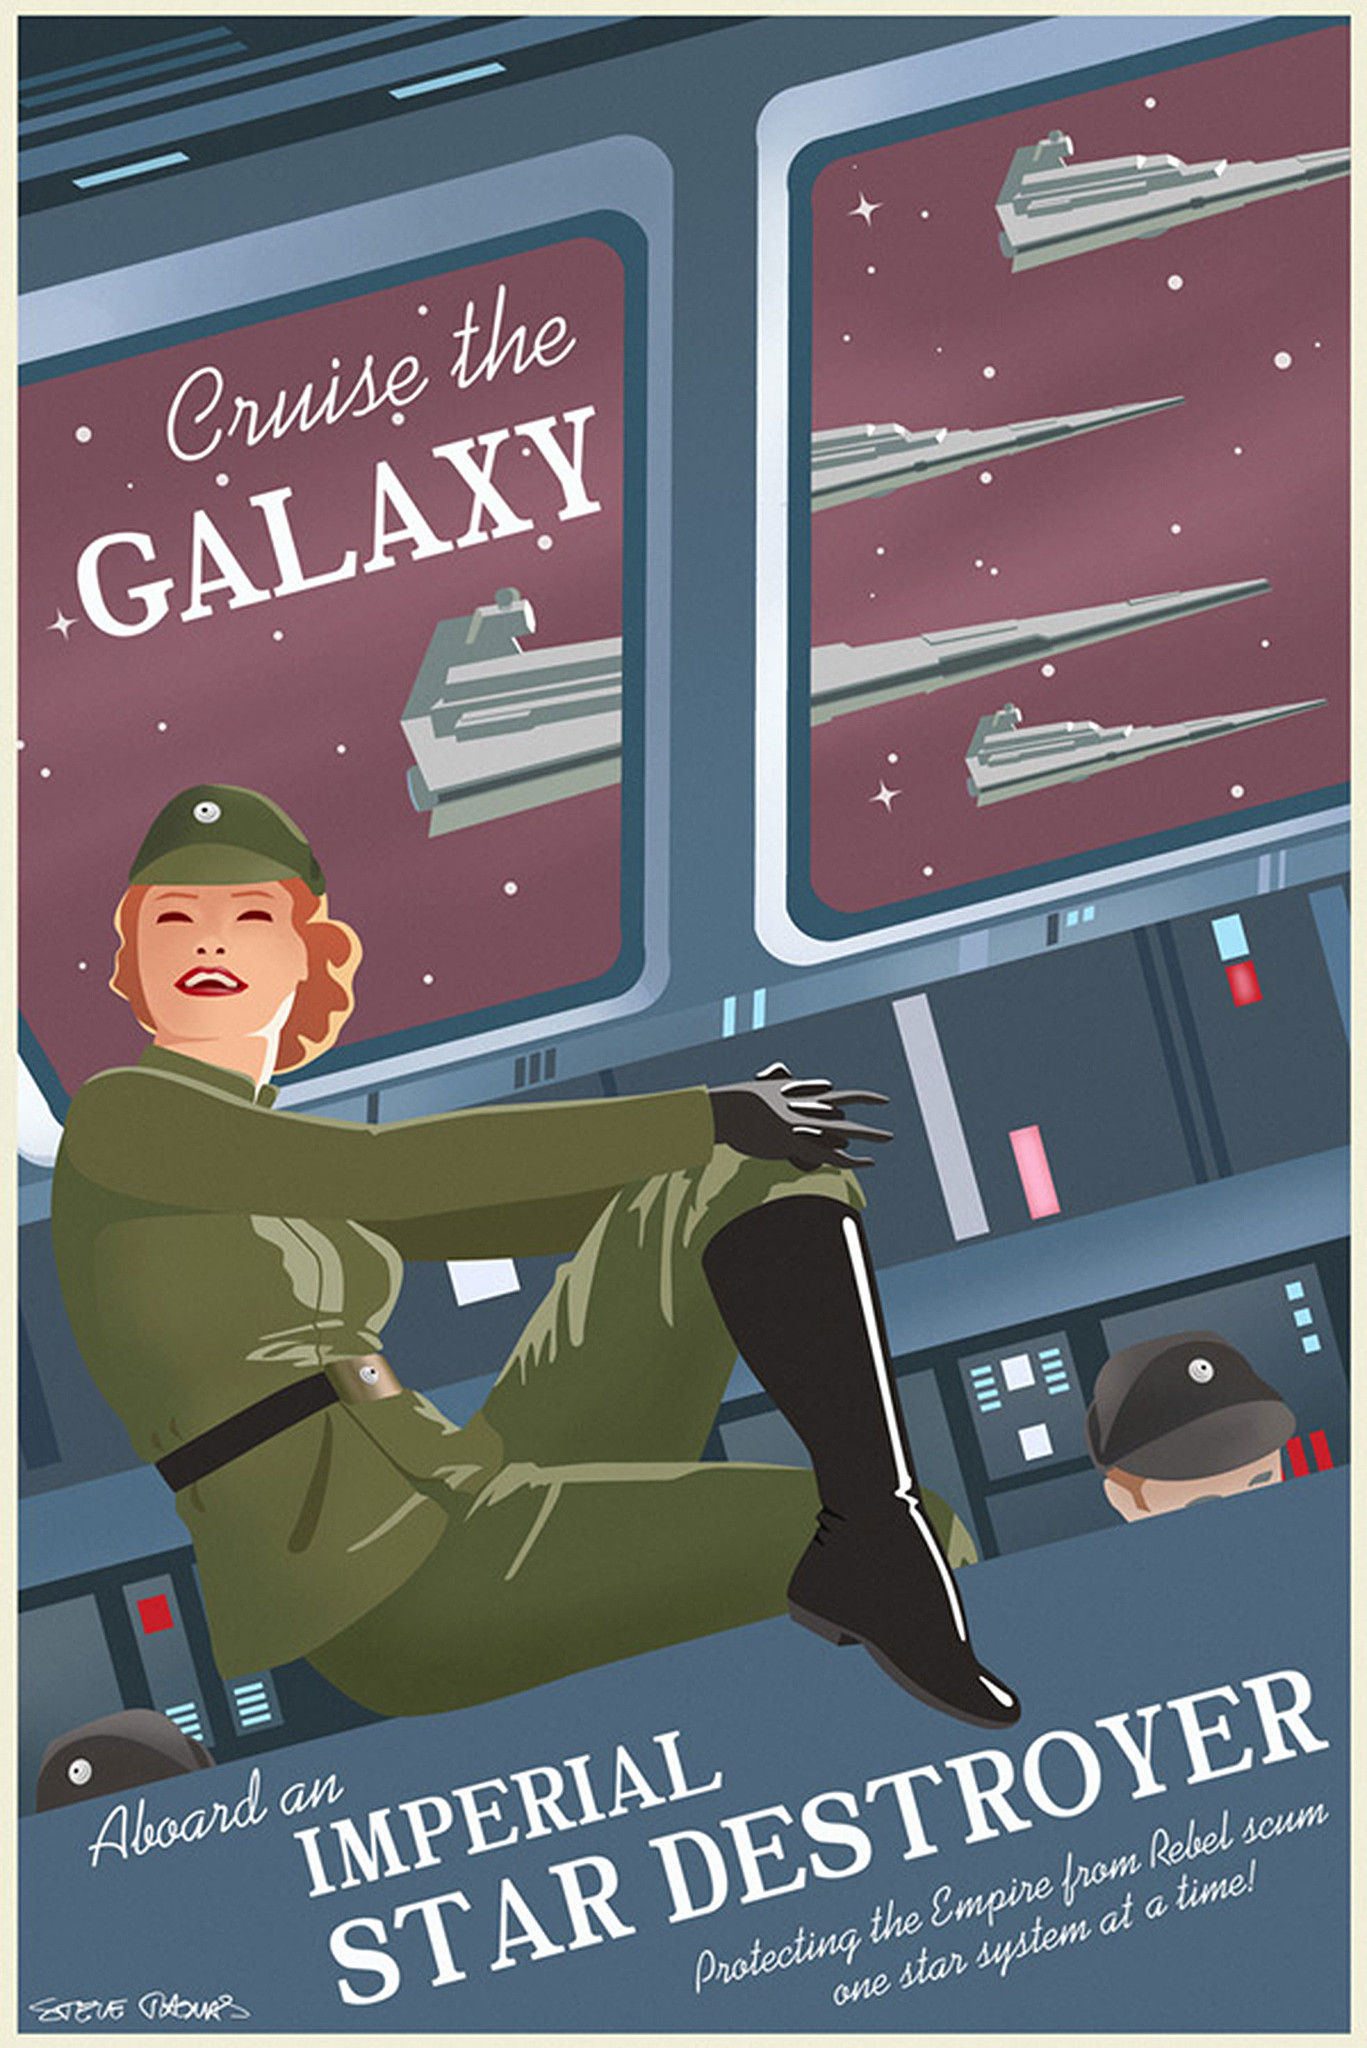 star-wars-travel-posters-steve-thomas-3